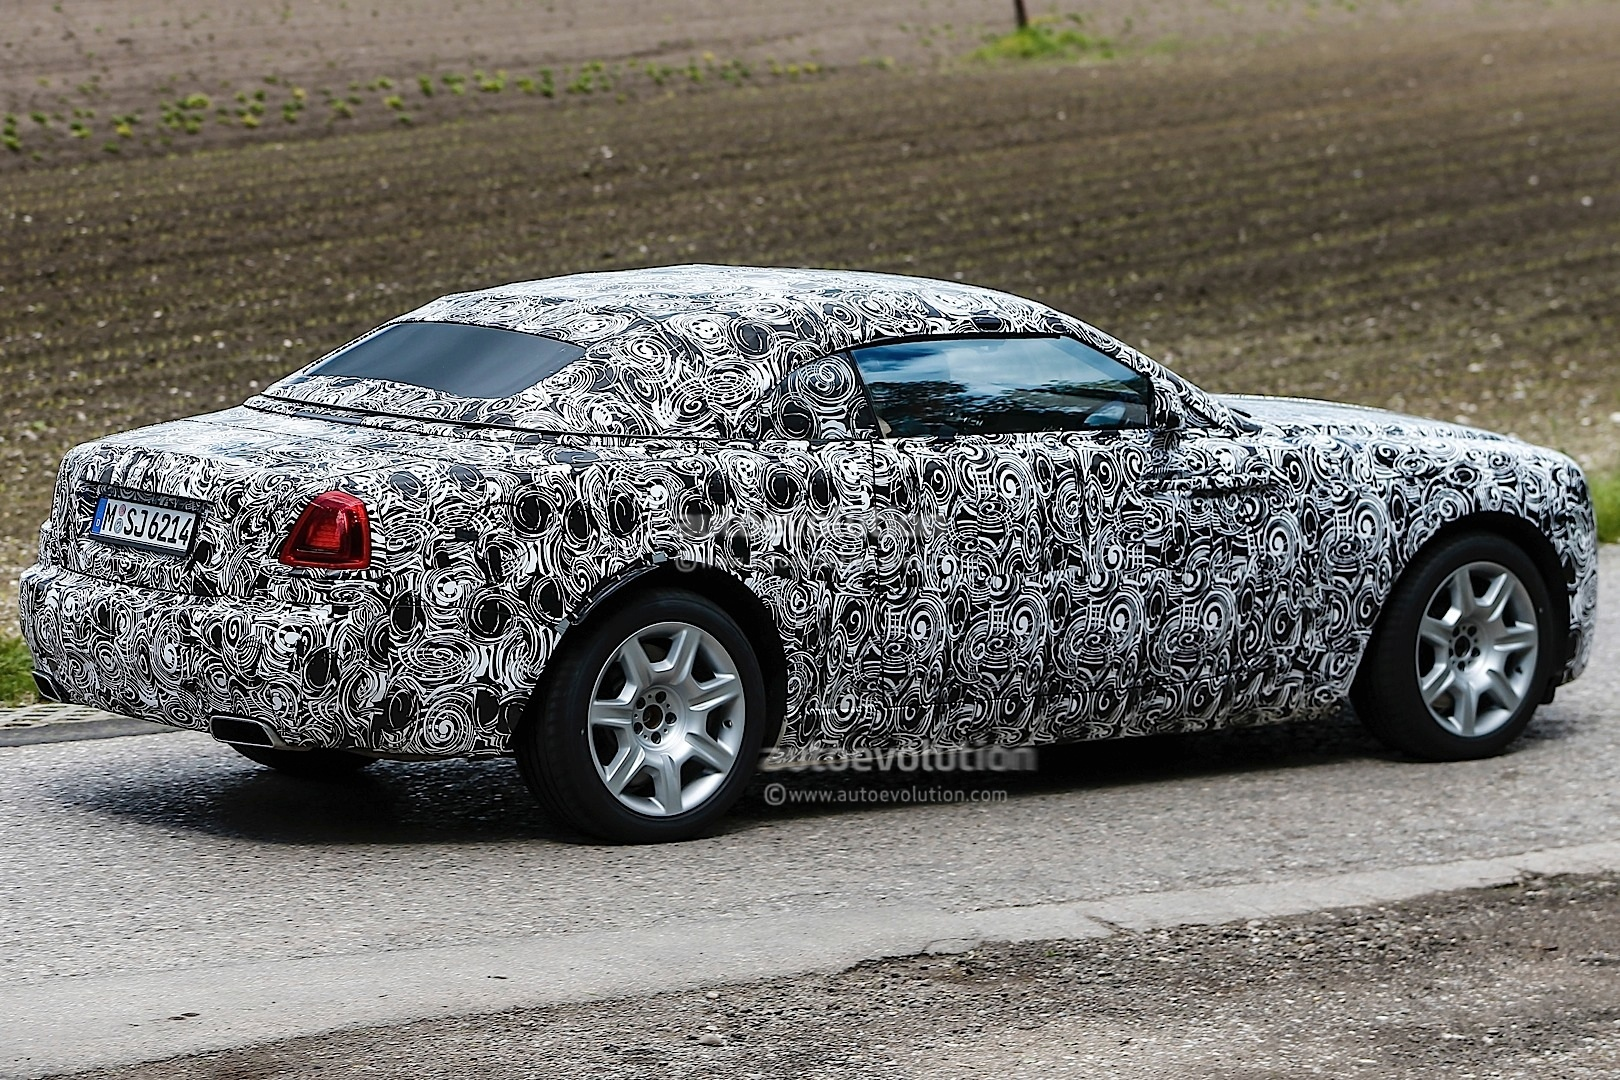 Coolest Car In The World Wallpaper Rolls Royce Spied Testing Wraith Drophead Coupe